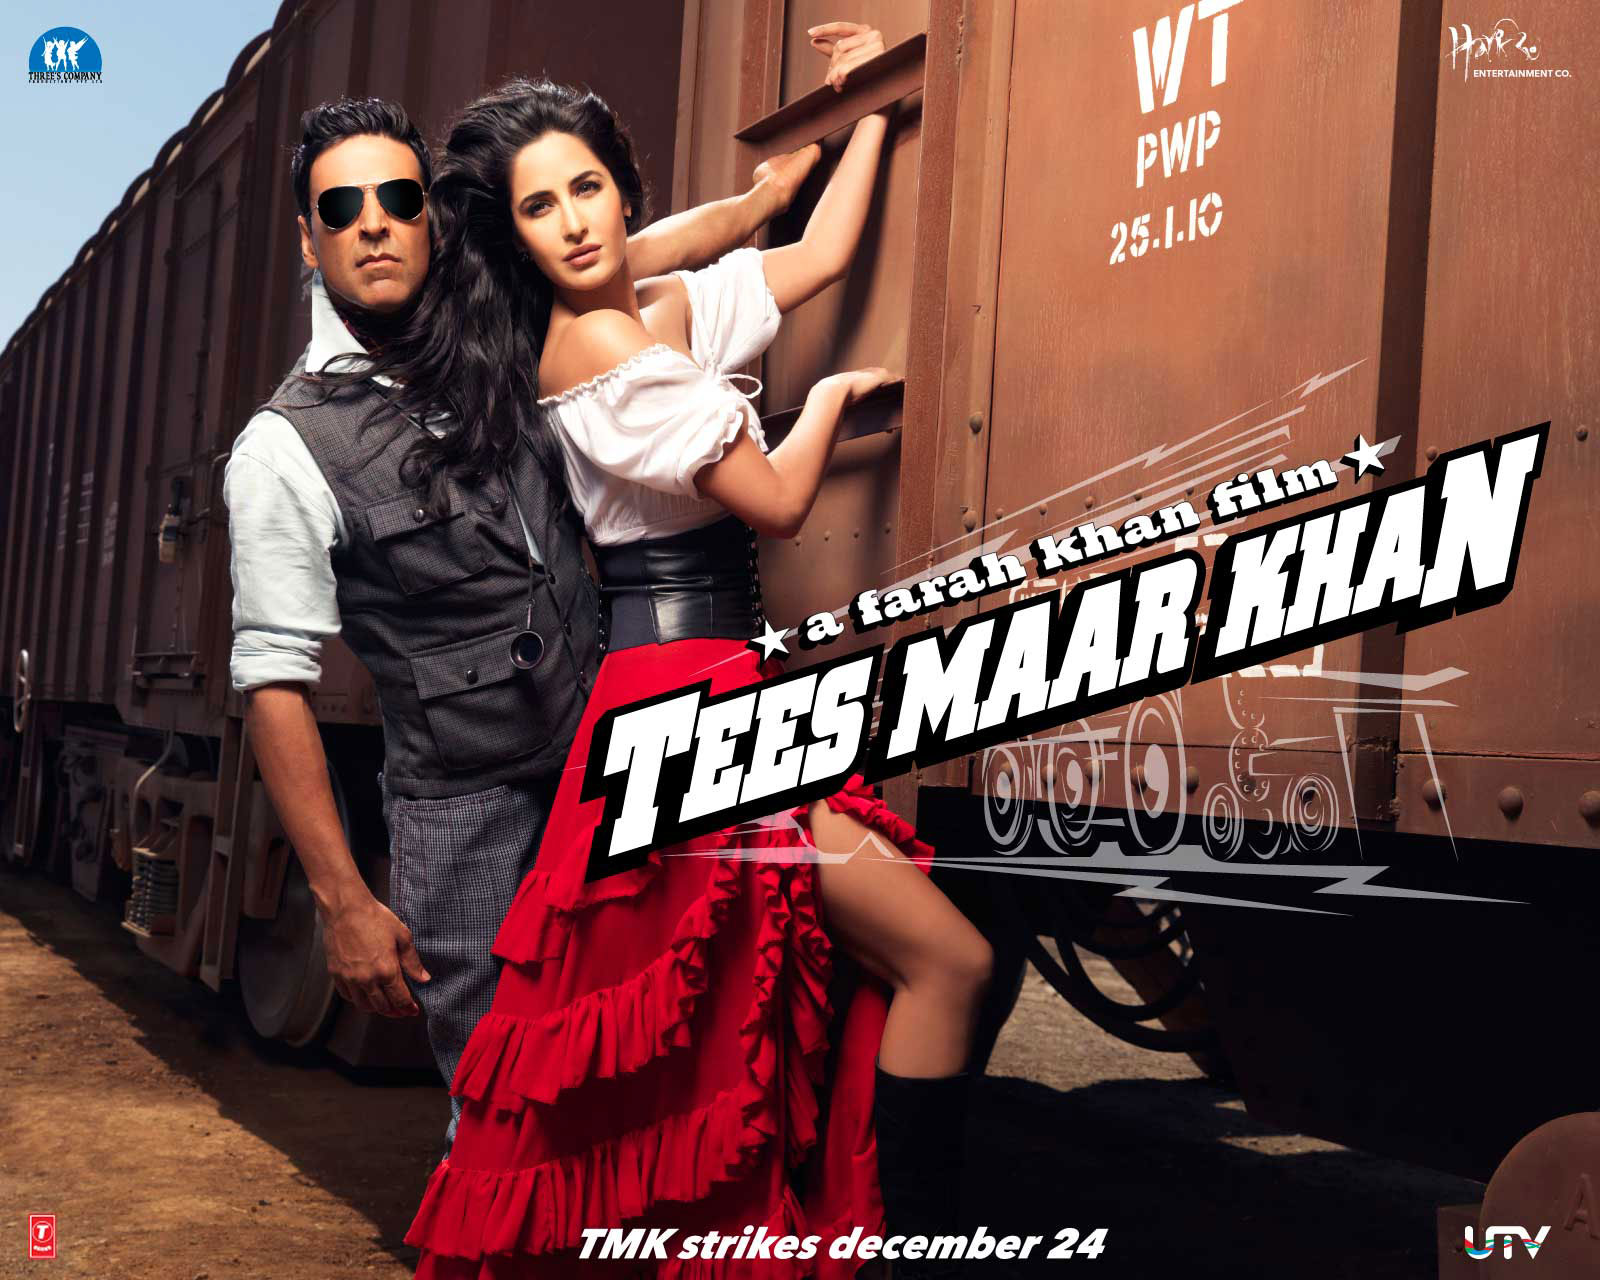 http://3.bp.blogspot.com/_tWtGNWVDlTE/TPXYyIVf5PI/AAAAAAAAFe4/NfjkZrzVQm0/s1600/katrina-kaif-tees-maar-khan-movie-wallpapers-free-download.jpg